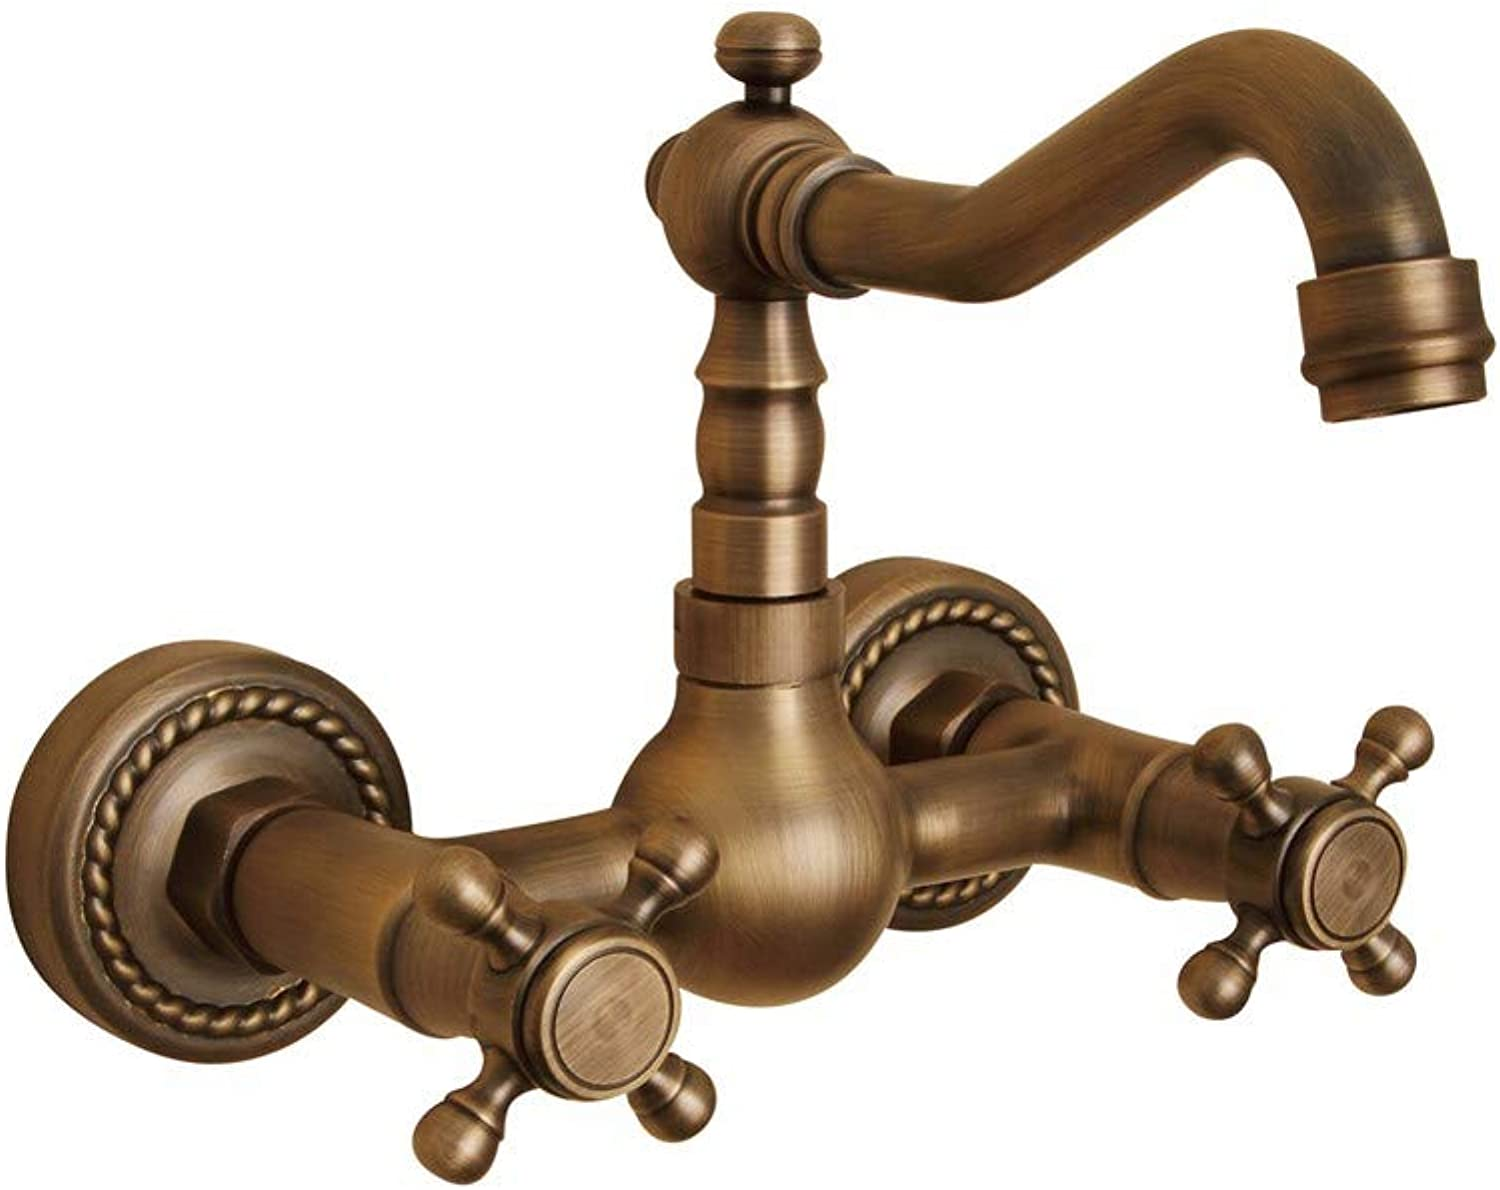 FT-13 Hot and Cold Faucet Retro Faucet Kitchen Bathroom Faucet Single-Connected Antique Copper in-Wall redating Kitchen Mixer Faucet Basin Faucet